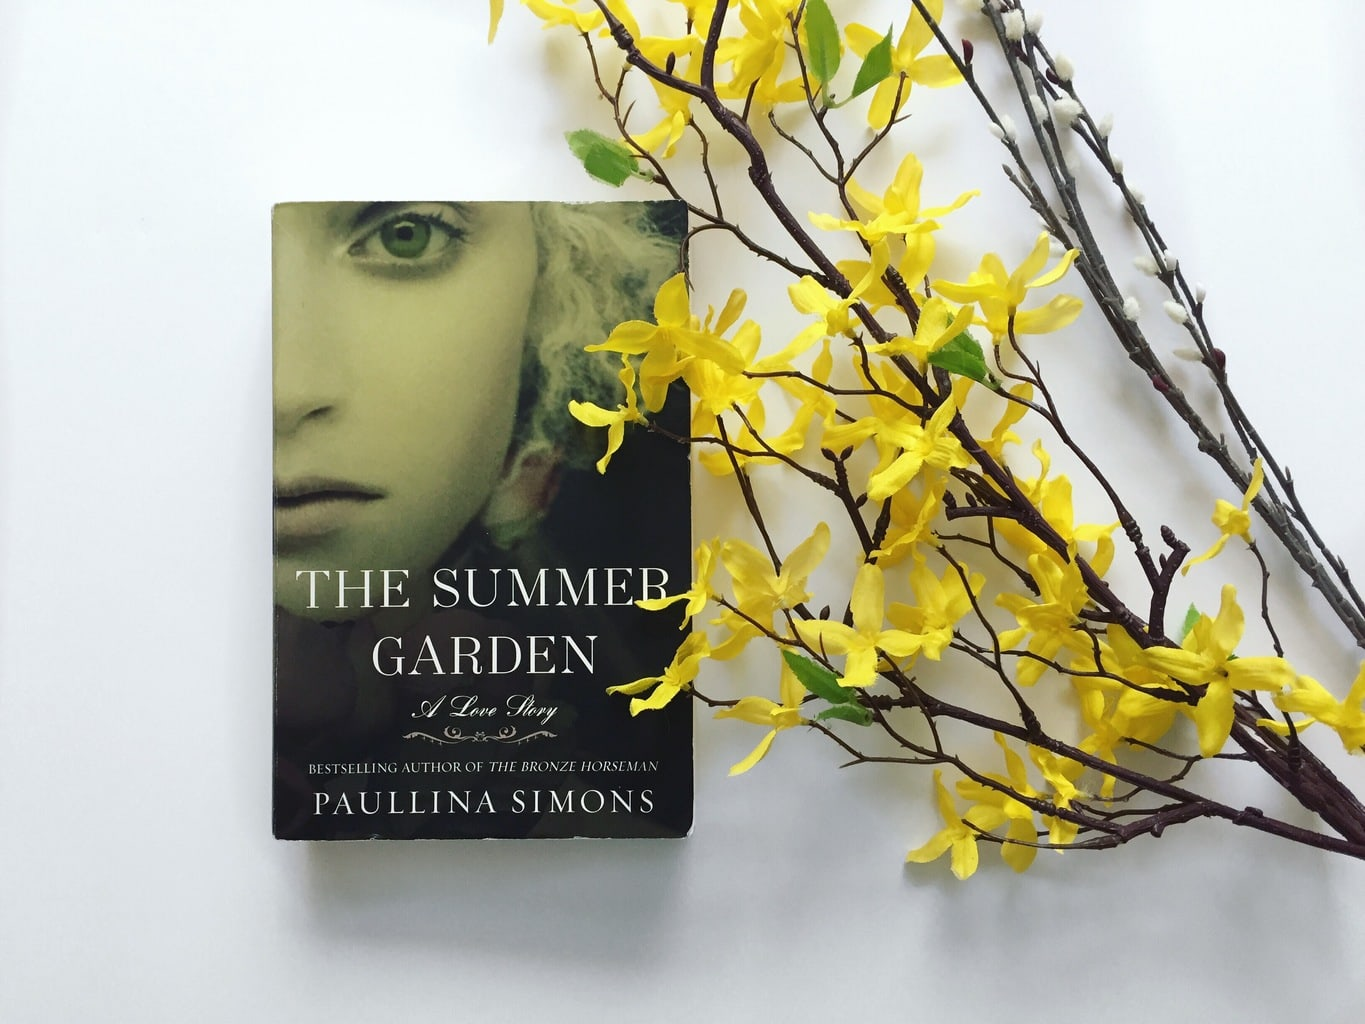 The Summer Garden: The trilogy finale that left me sobbing.